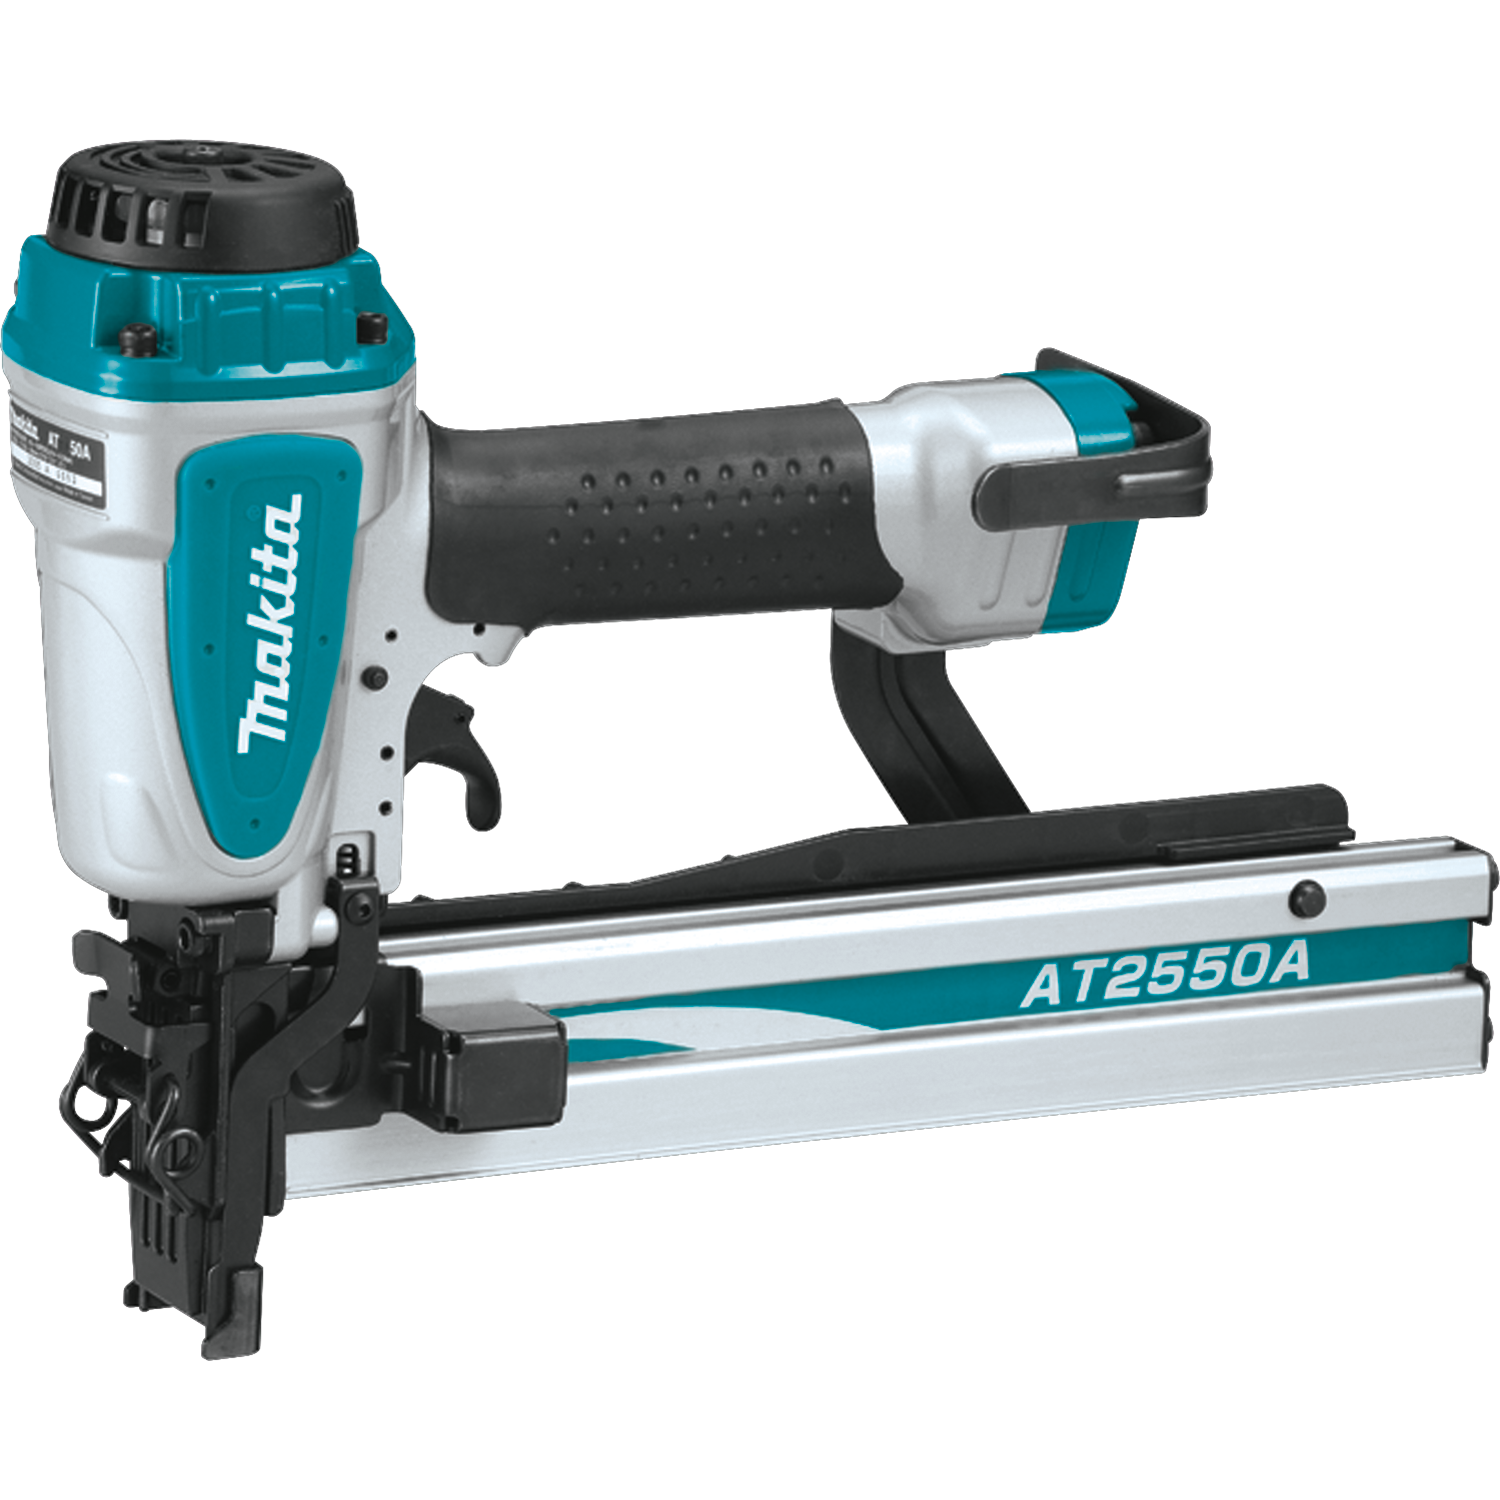 Makita USA - Product Details -AT2550A on